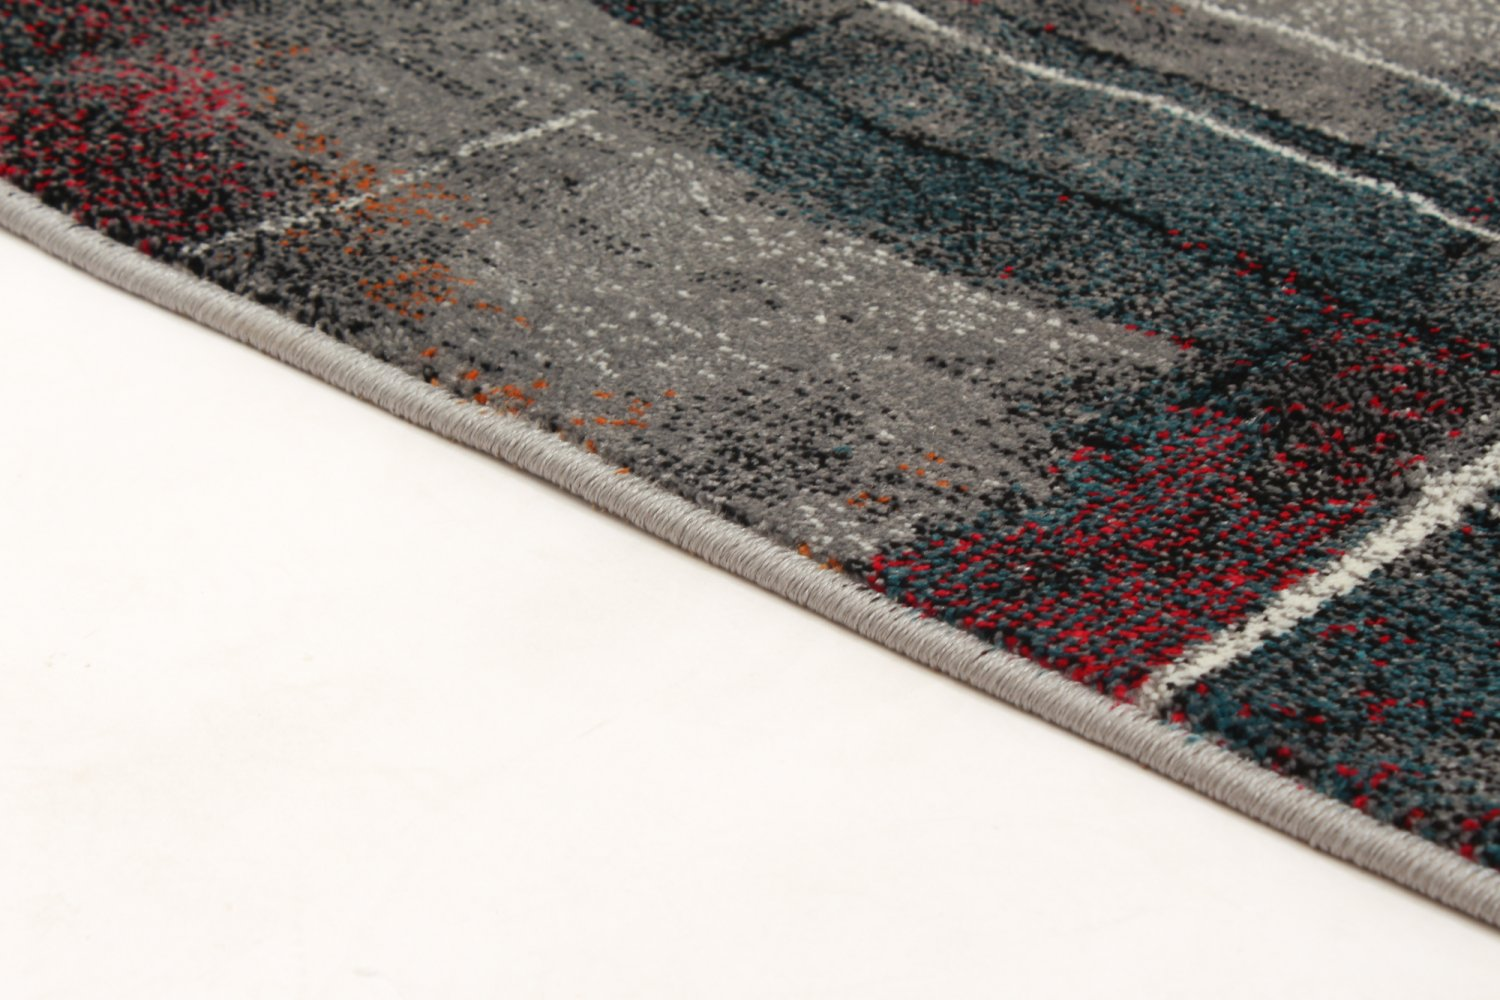 Wilton Rug Sonora Multi Multi Colored Rugs